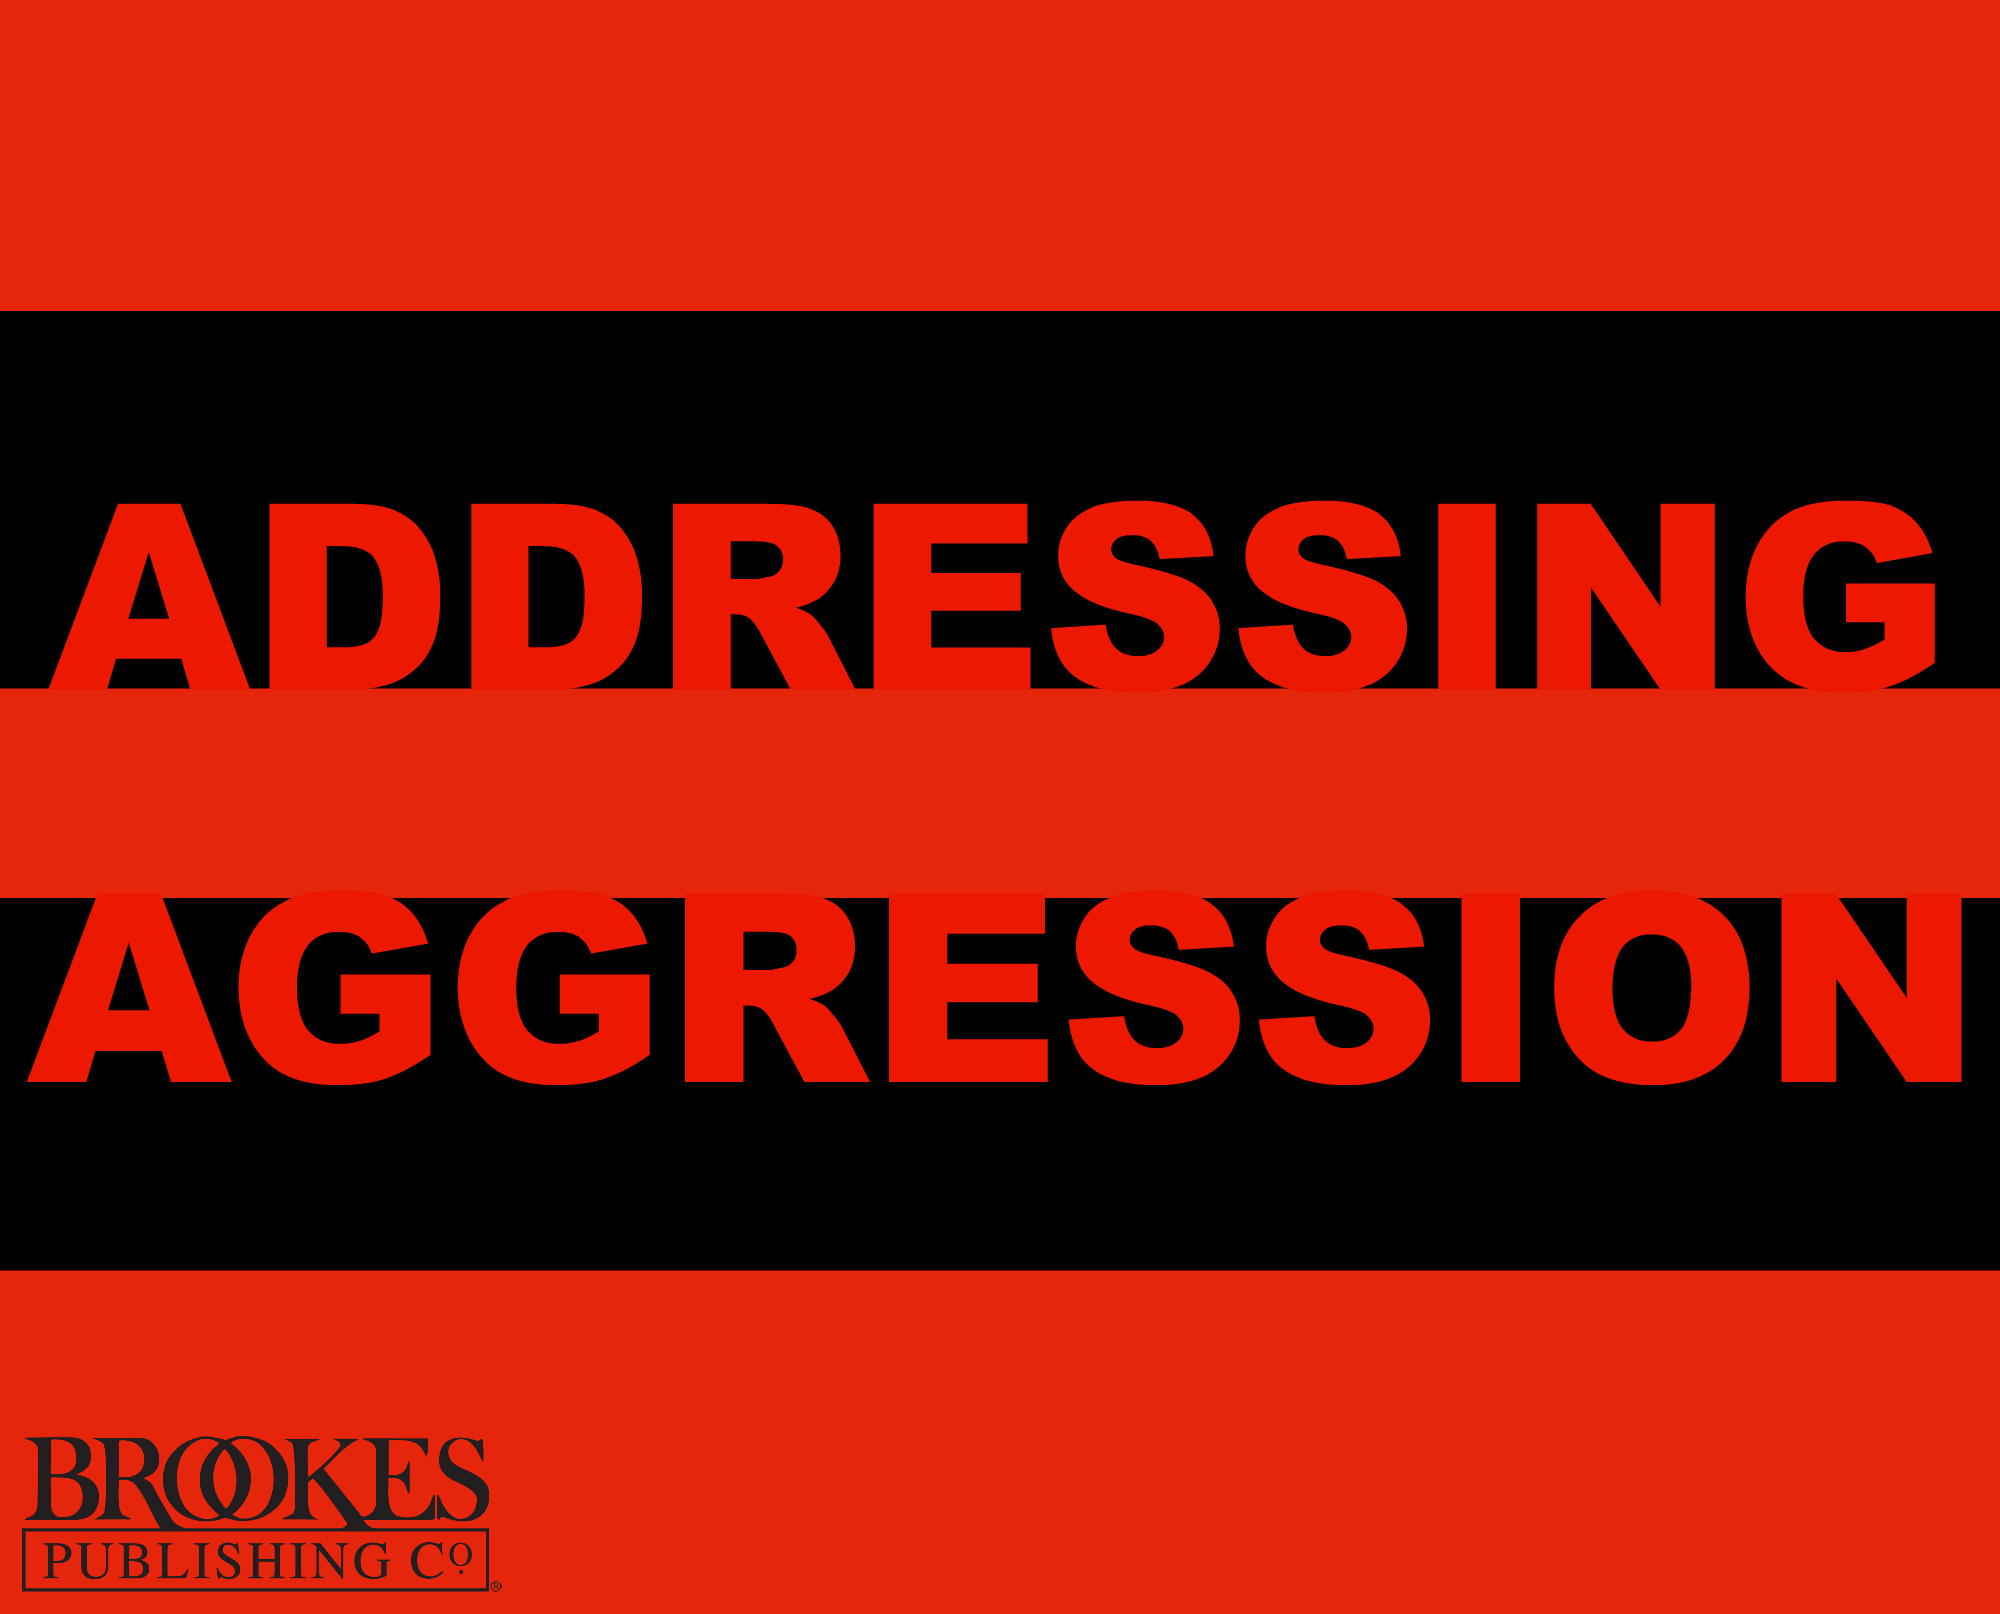 addressing aggression